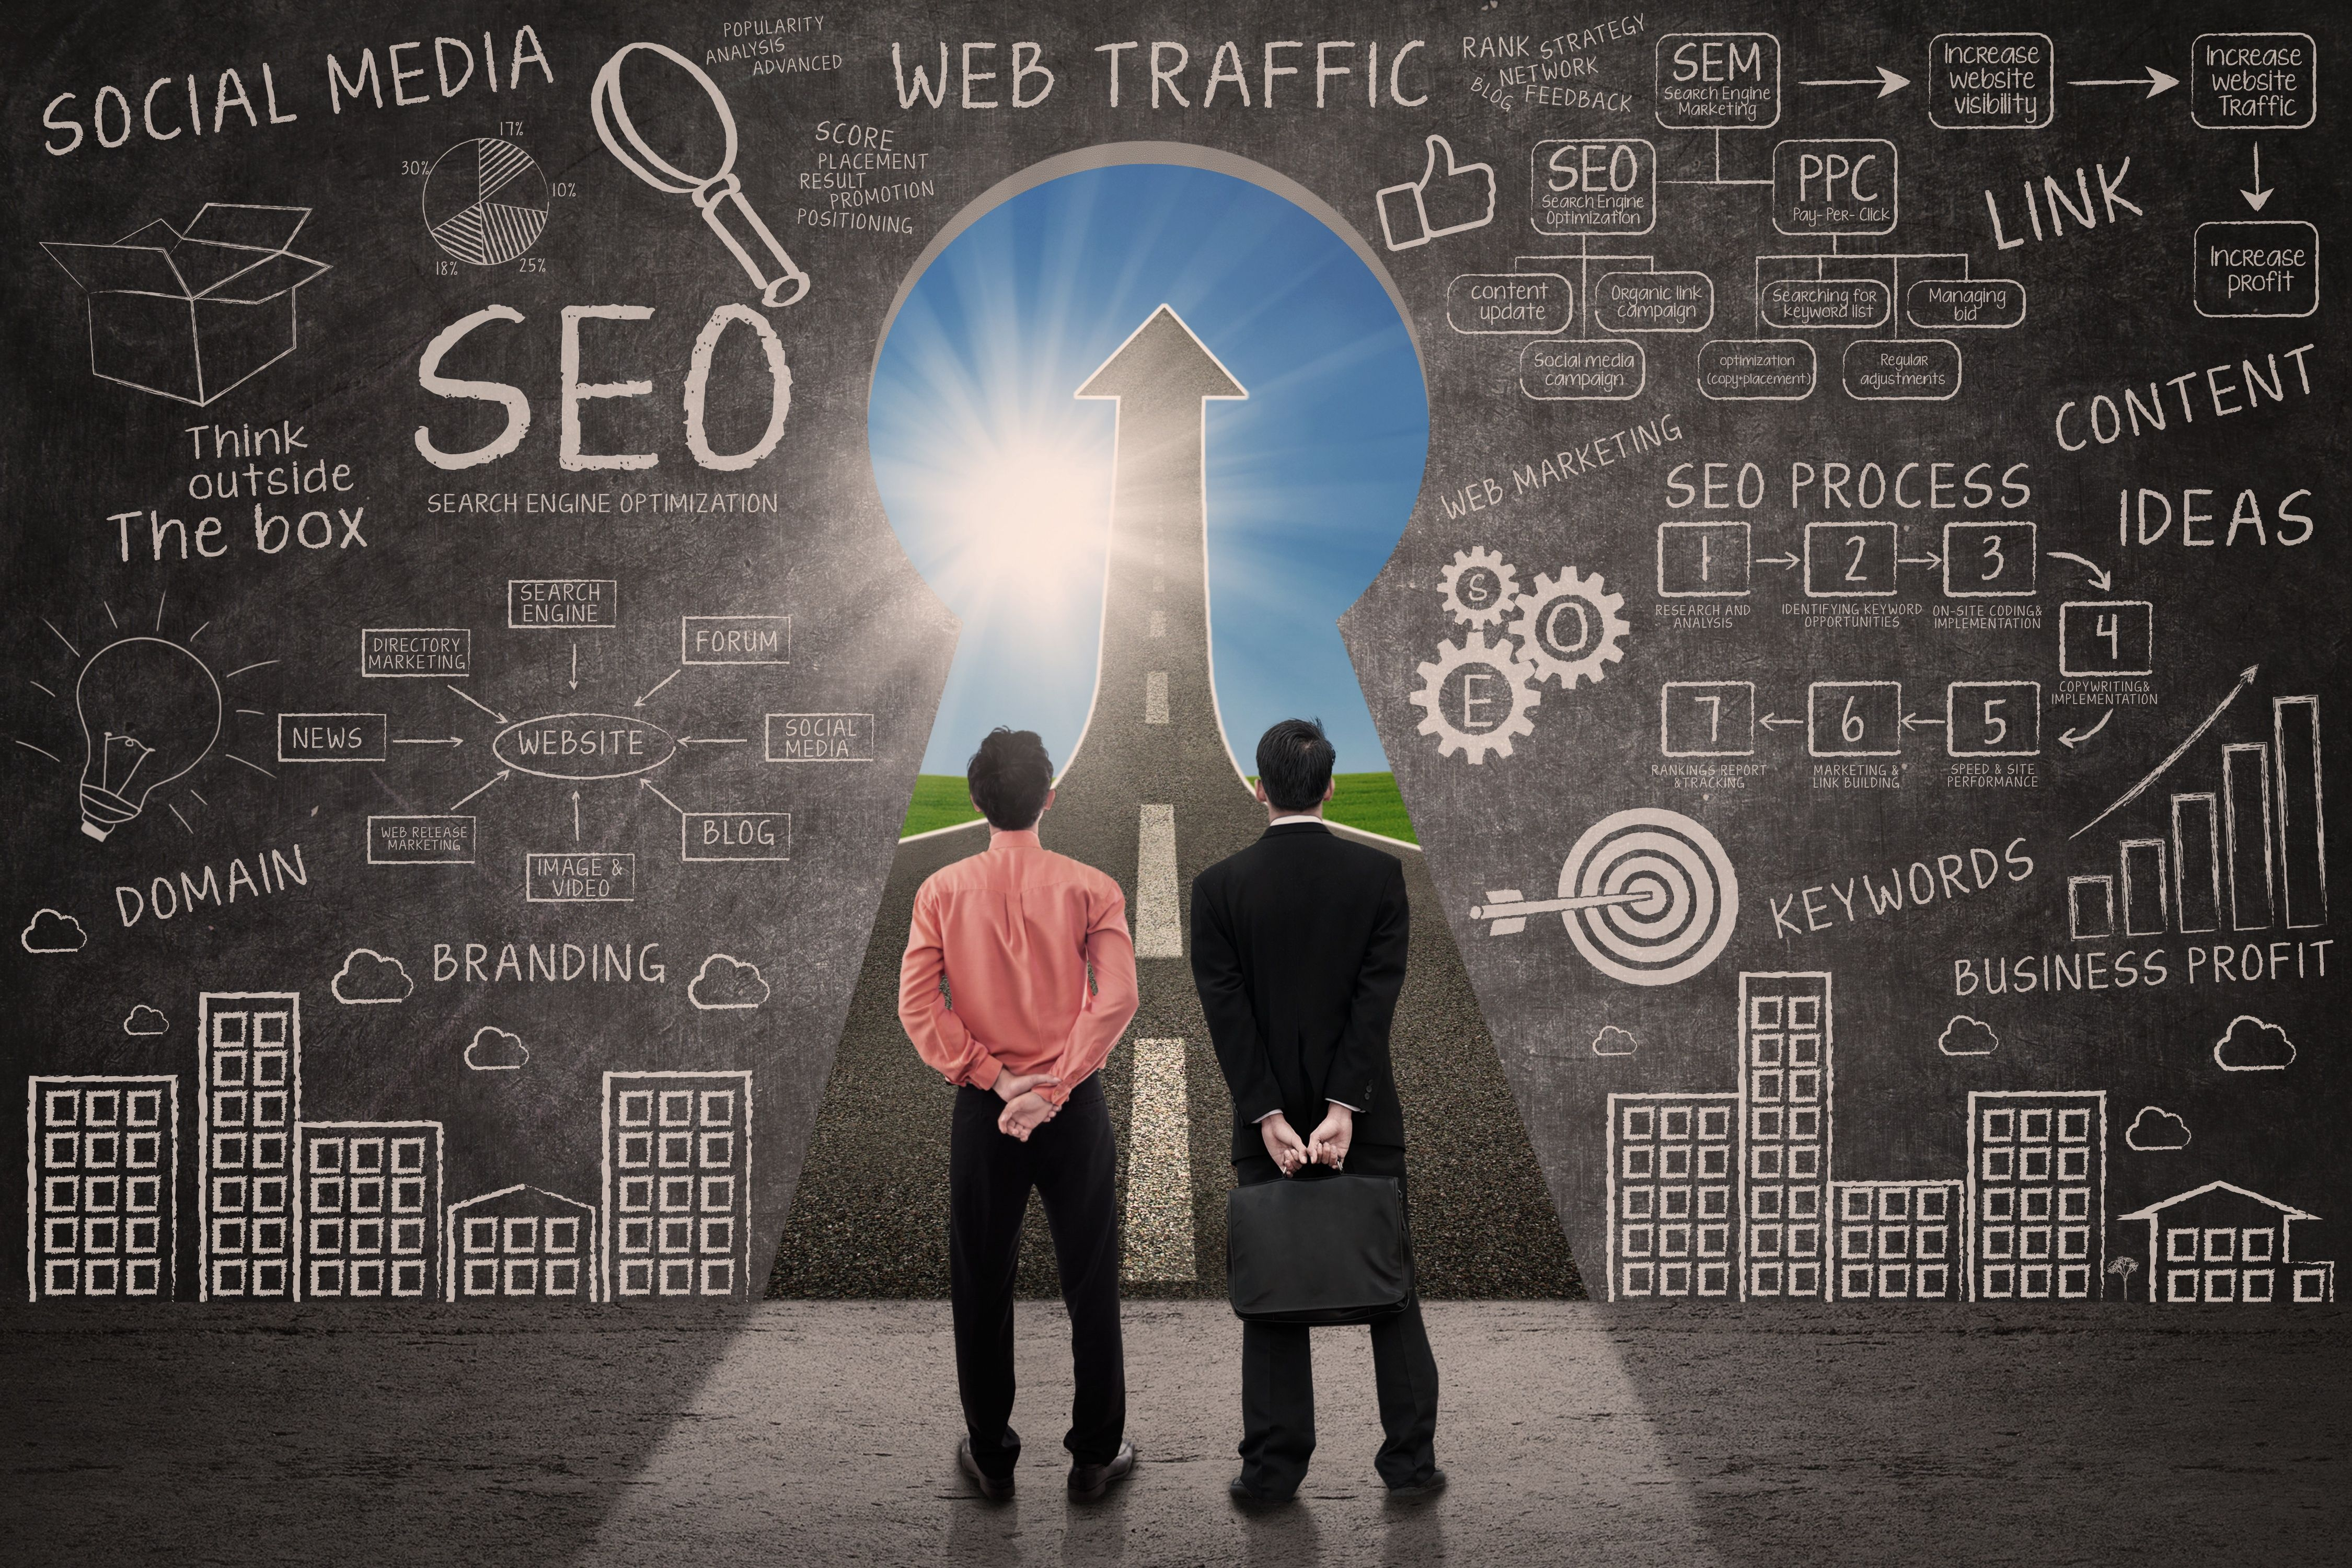 Digital Marketing for Manufacturers - Top 5 SEO Tips